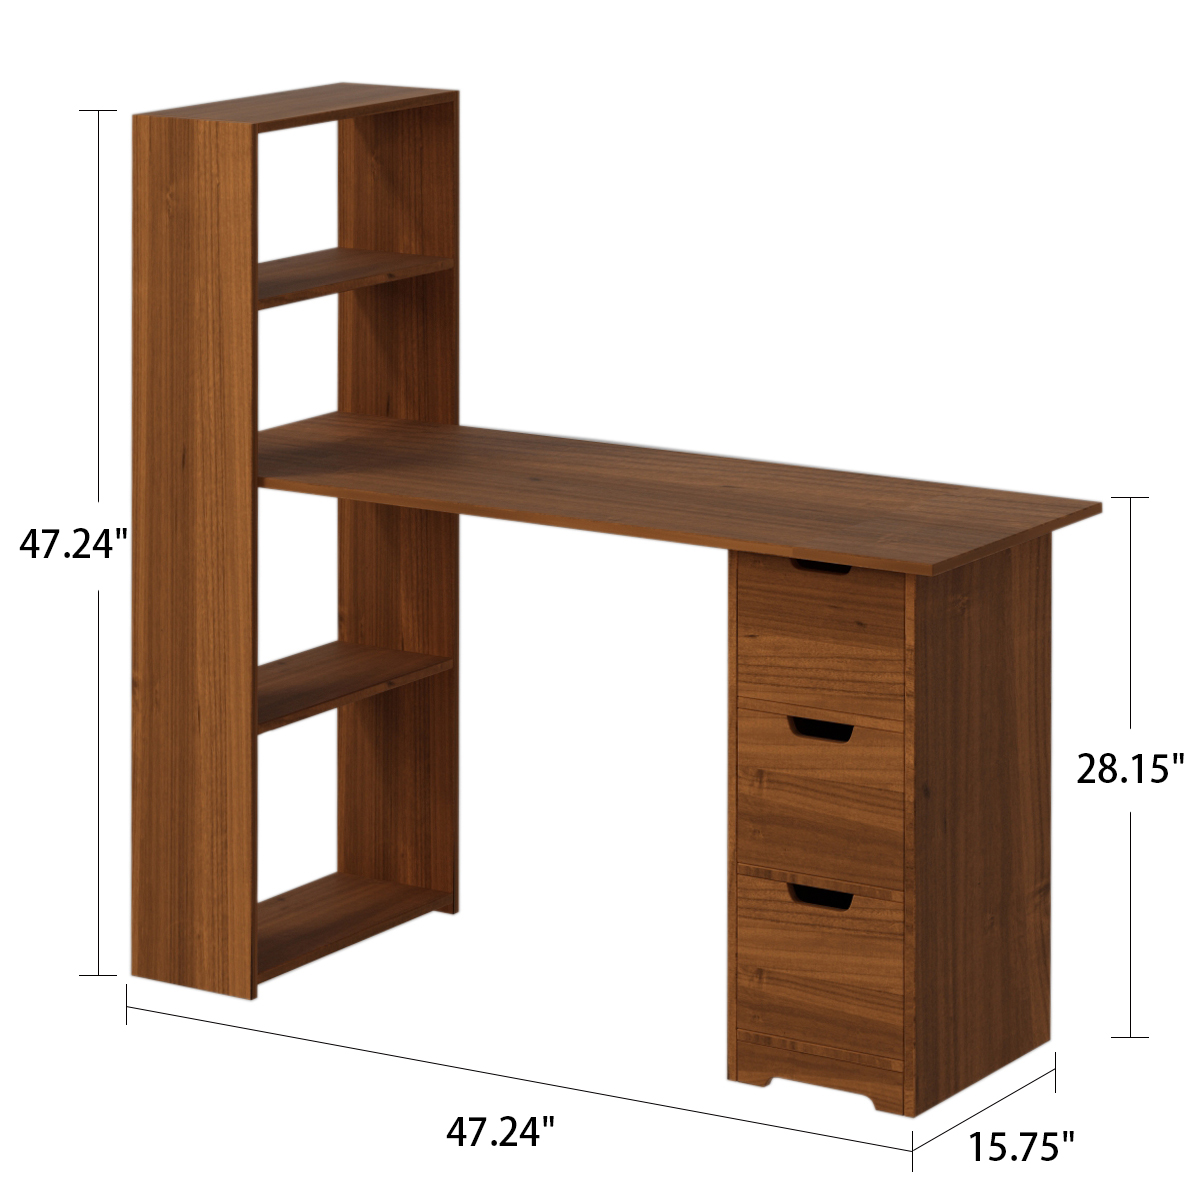 Wood Frame Computer Desk With Hutch And Bookshelf Heavy Duty Wooden Sturdy Office Desk With Storage Shelves For Home Office Natural Walmart Com Walmart Com